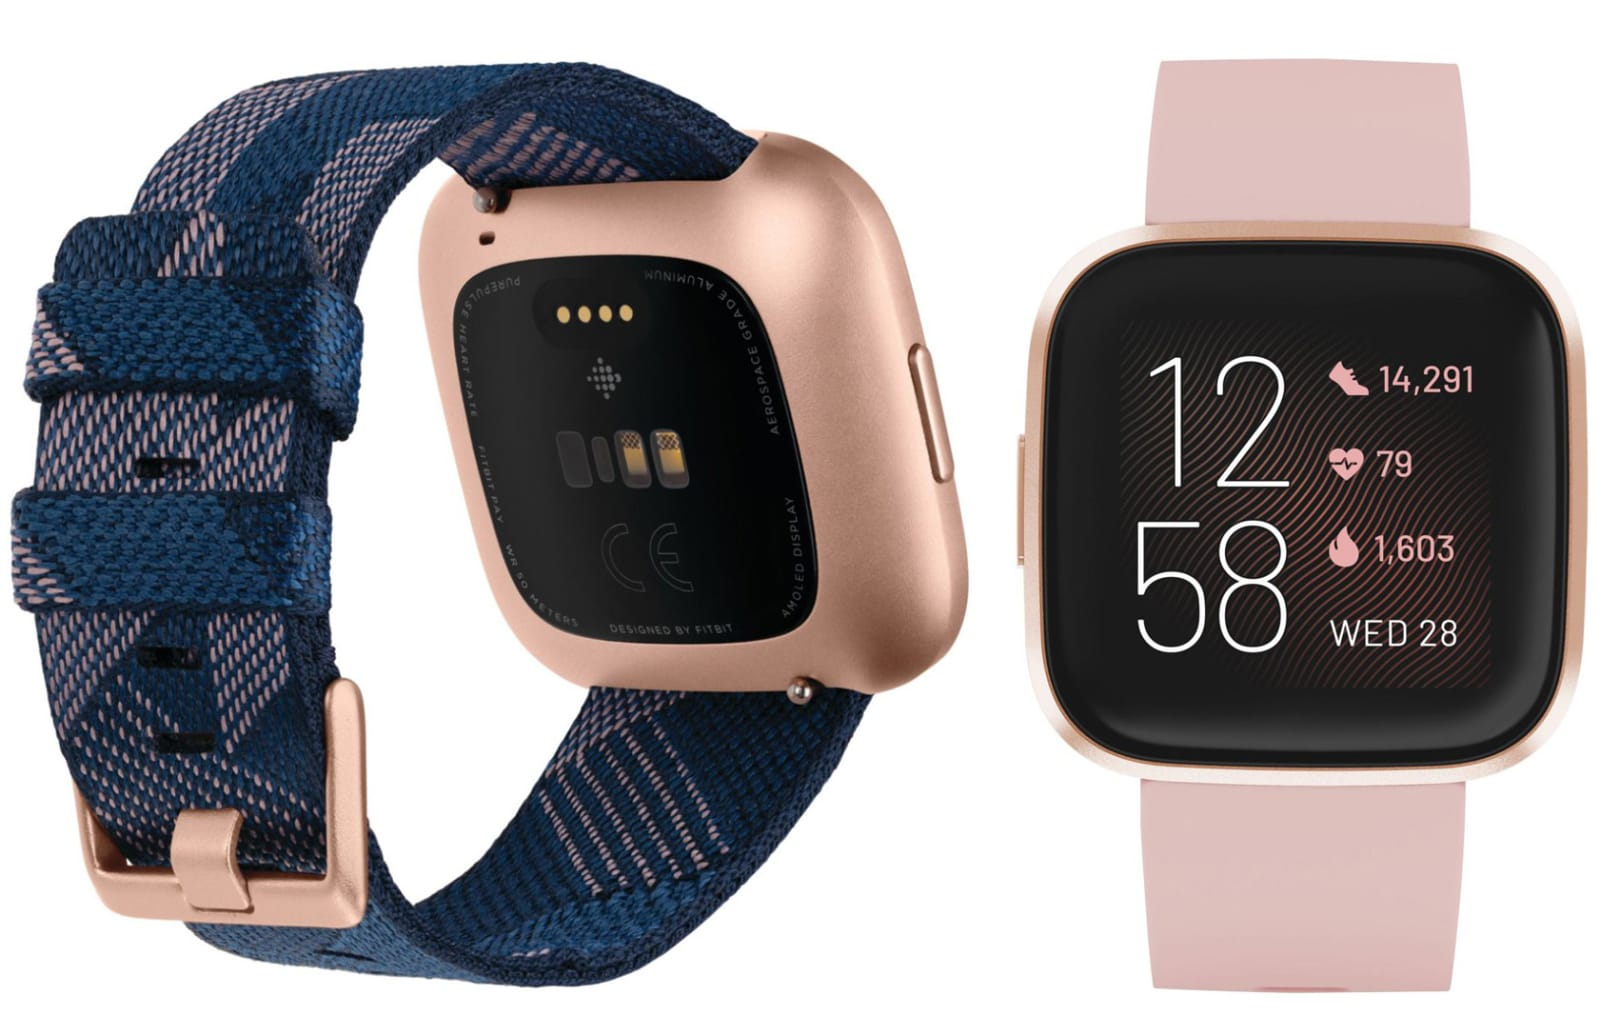 Fitbit smartwatch with Alexa and OLED